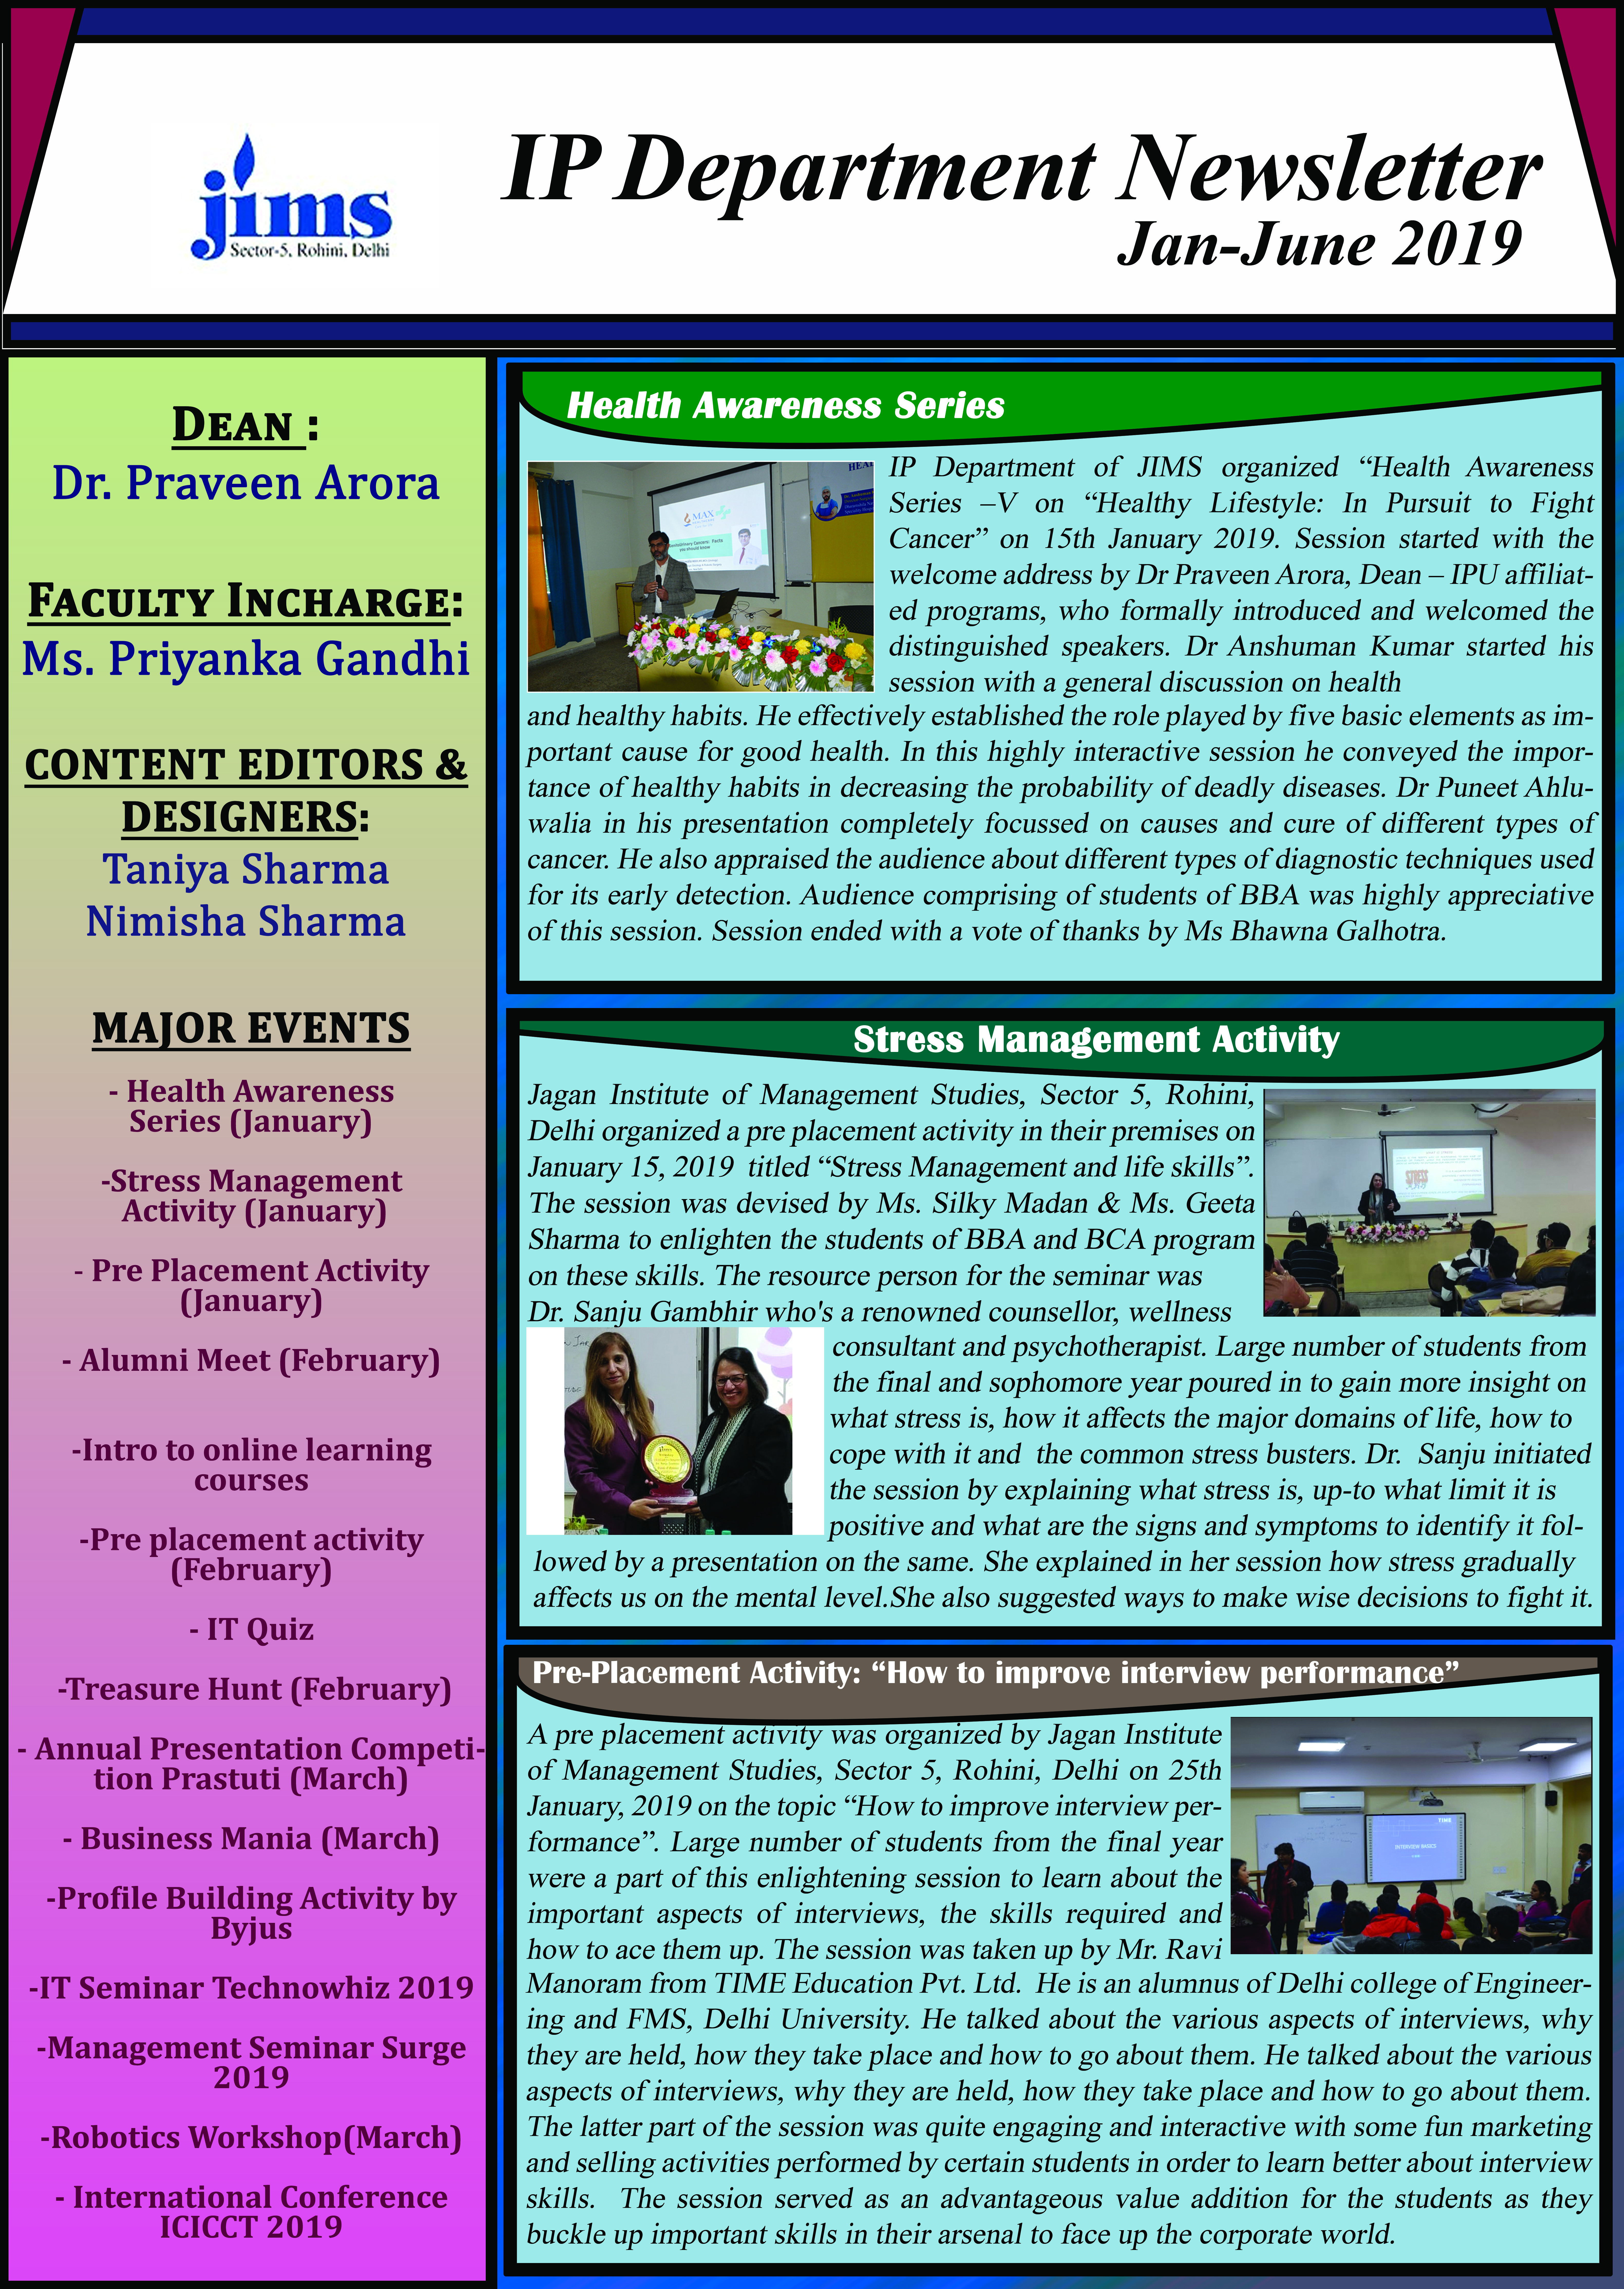 JIMS IP Department Newsletter